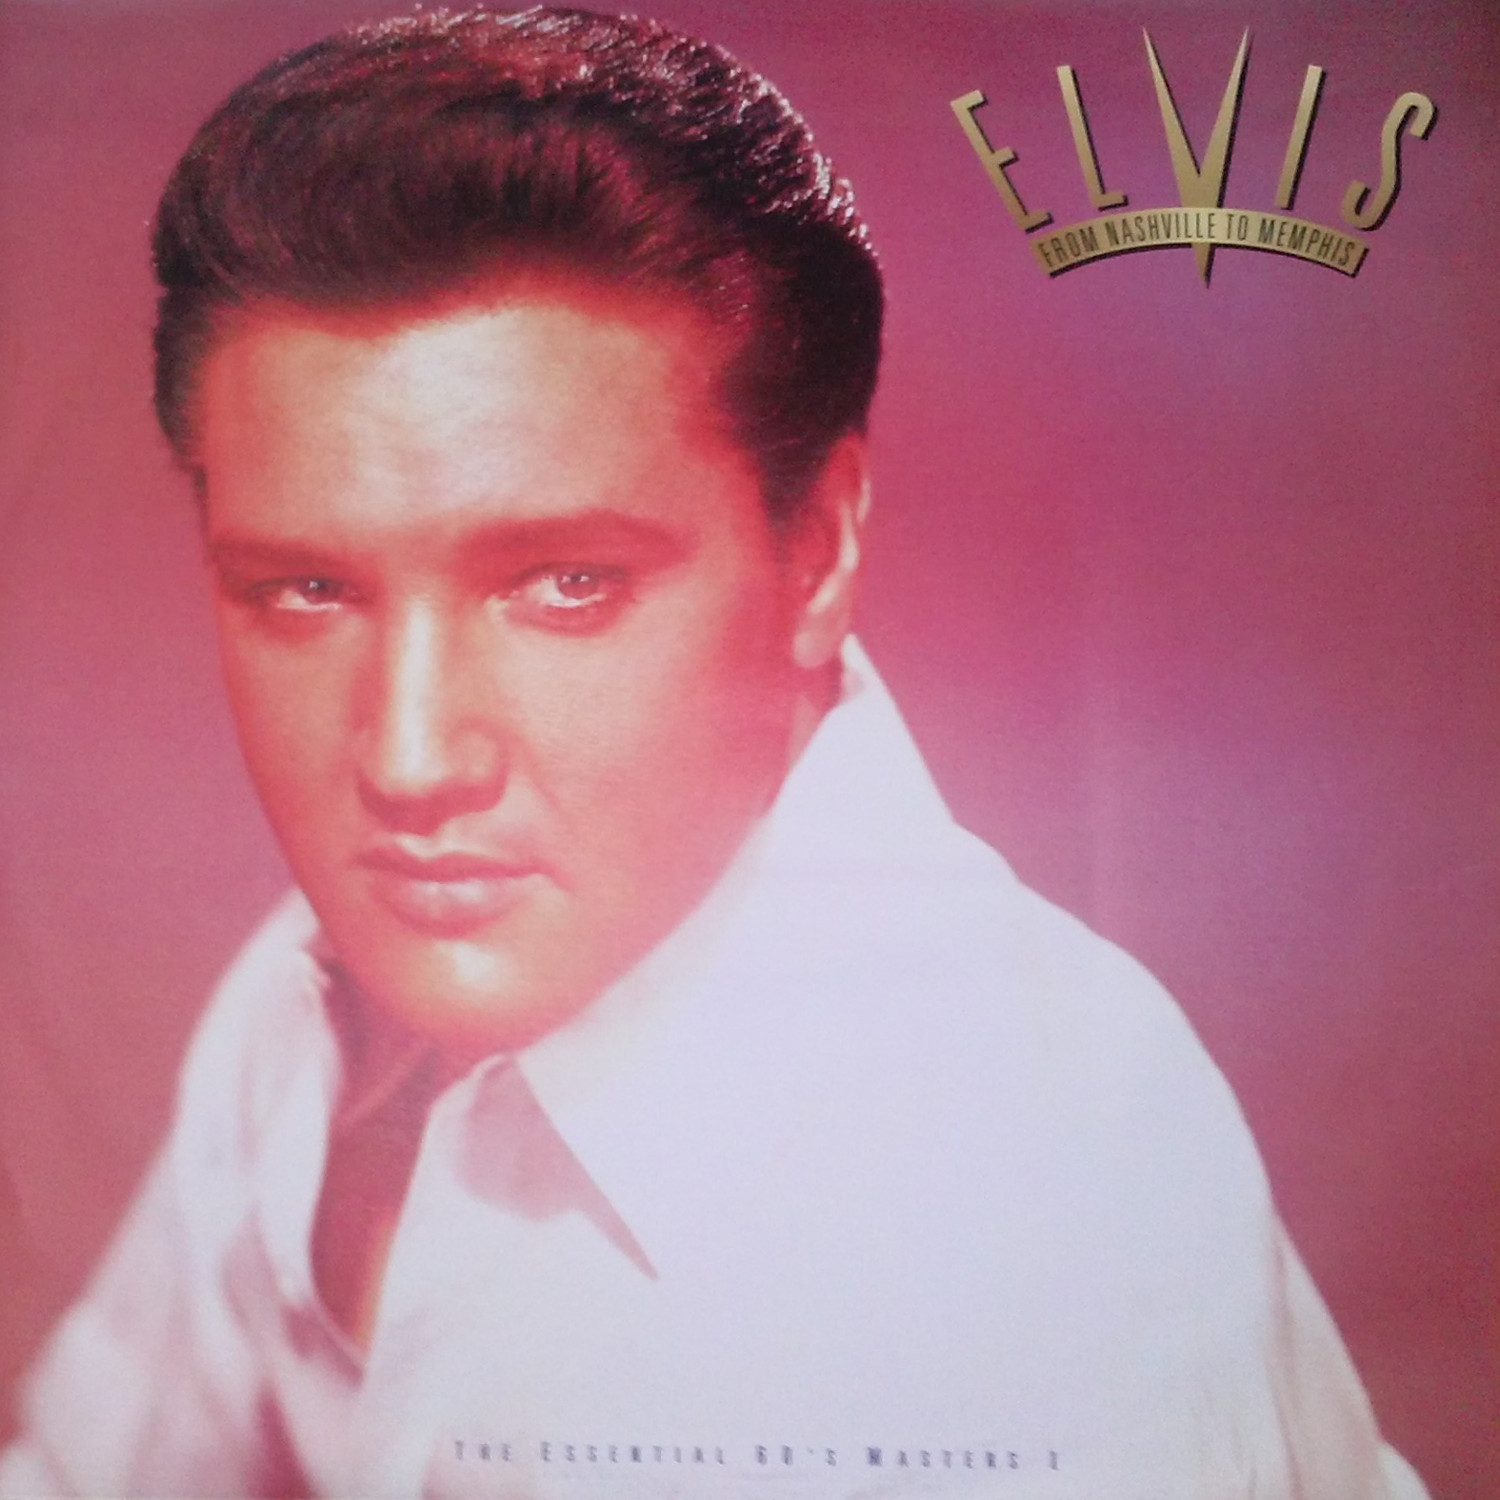 ELVIS - FROM NASHVILLE TO MEMPHIS - THE ESSENTIAL 60'S MASTERS Cam00104dguyh